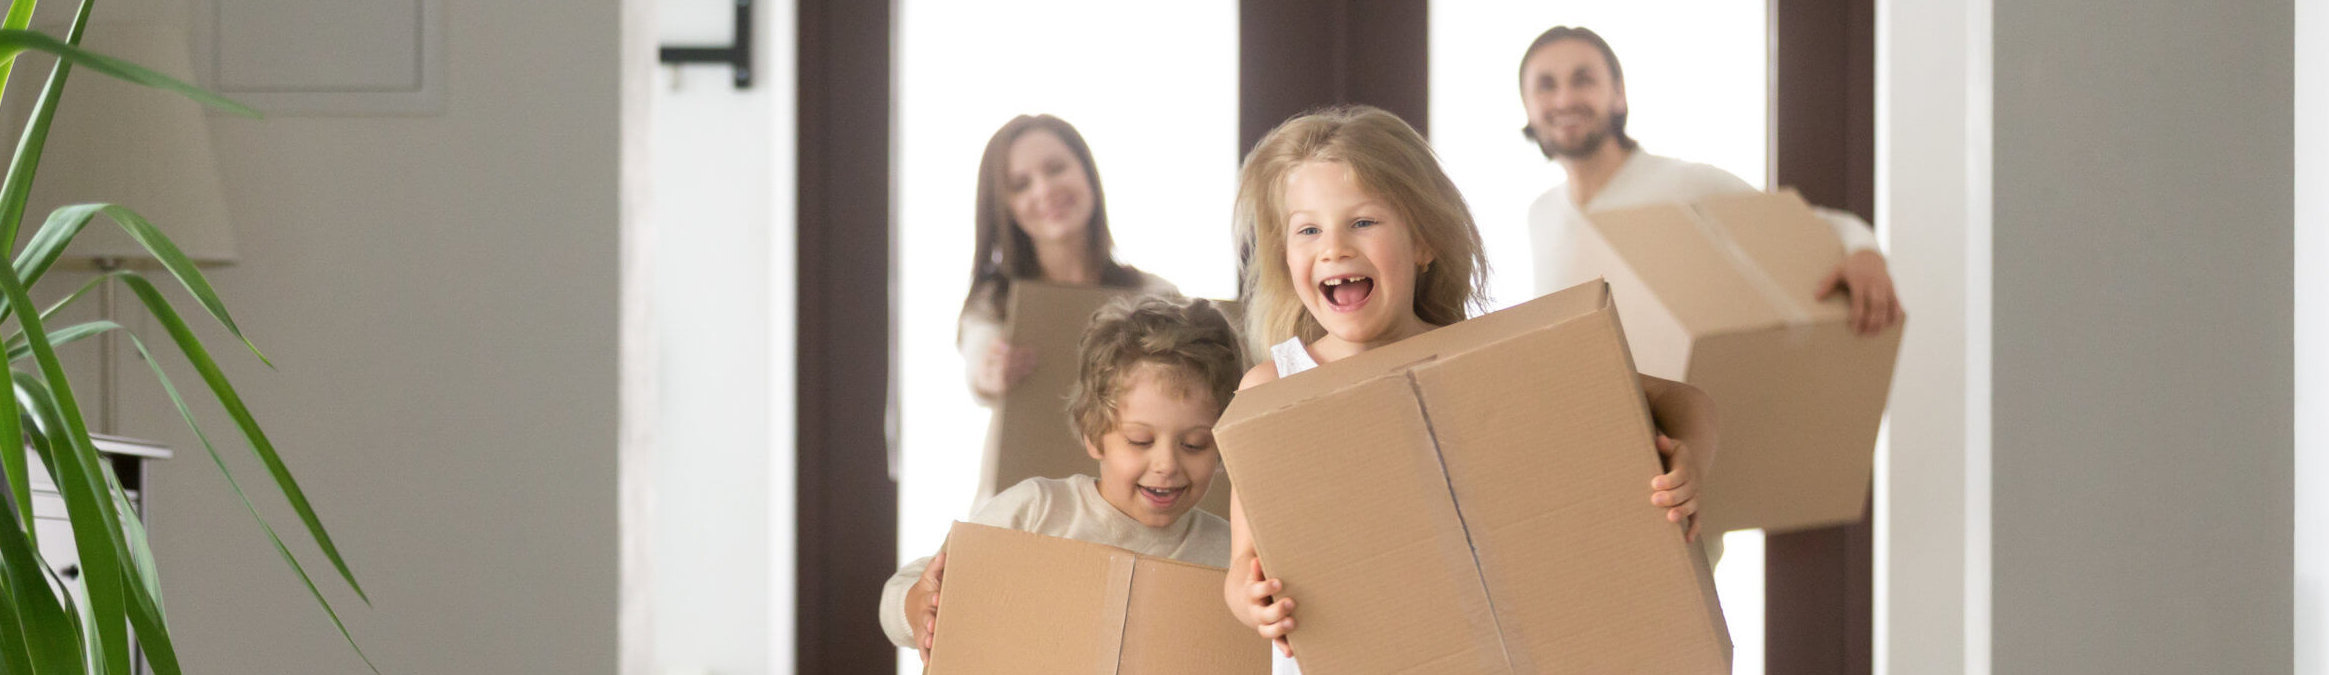 Couple and little kids with boxes running into new house